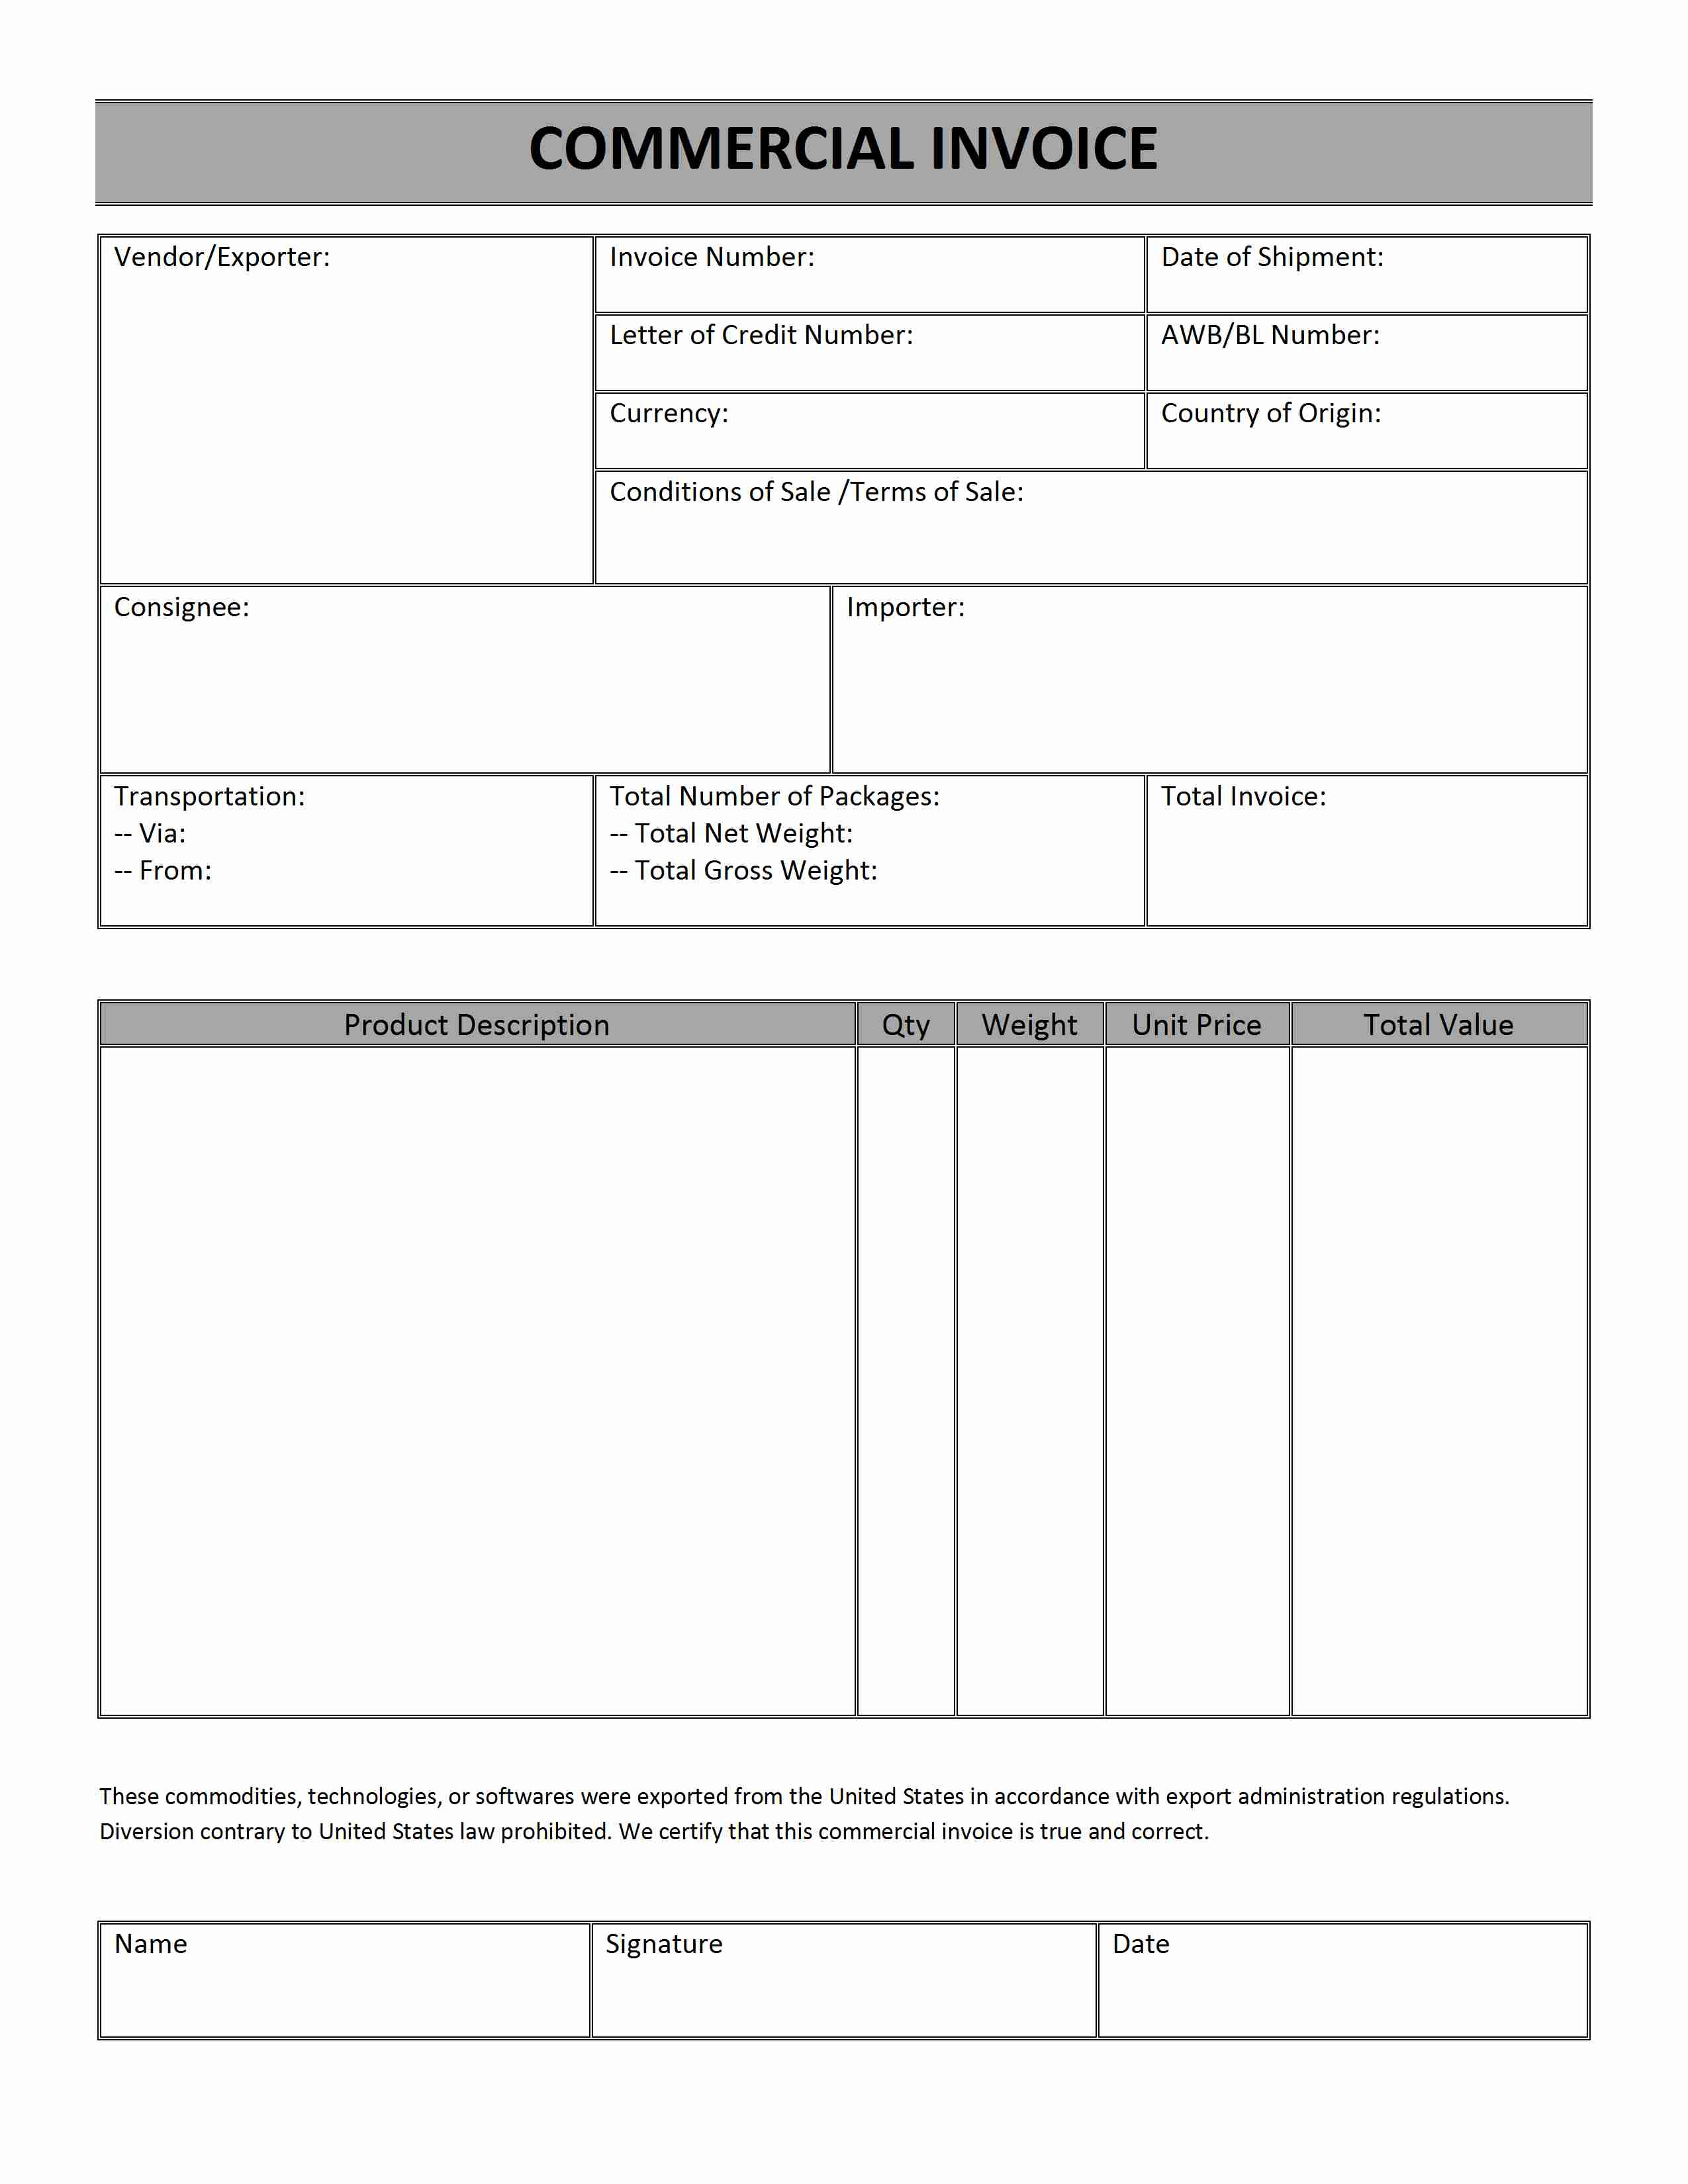 Darkfaderus  Inspiring Printable Sales Invoice Simple Invoice Form Free Invoice  With Outstanding Printable Receipt Free  Free Printable Raffle Tickets  Receipt   Printable With Breathtaking Receipt Synonym Also Rent Receipt Example In Addition Custom Receipts And Irs Tax Receipt As Well As Target Returns Without A Receipt Additionally What Is A Cash Receipt From Happytomco With Darkfaderus  Outstanding Printable Sales Invoice Simple Invoice Form Free Invoice  With Breathtaking Printable Receipt Free  Free Printable Raffle Tickets  Receipt   Printable And Inspiring Receipt Synonym Also Rent Receipt Example In Addition Custom Receipts From Happytomco